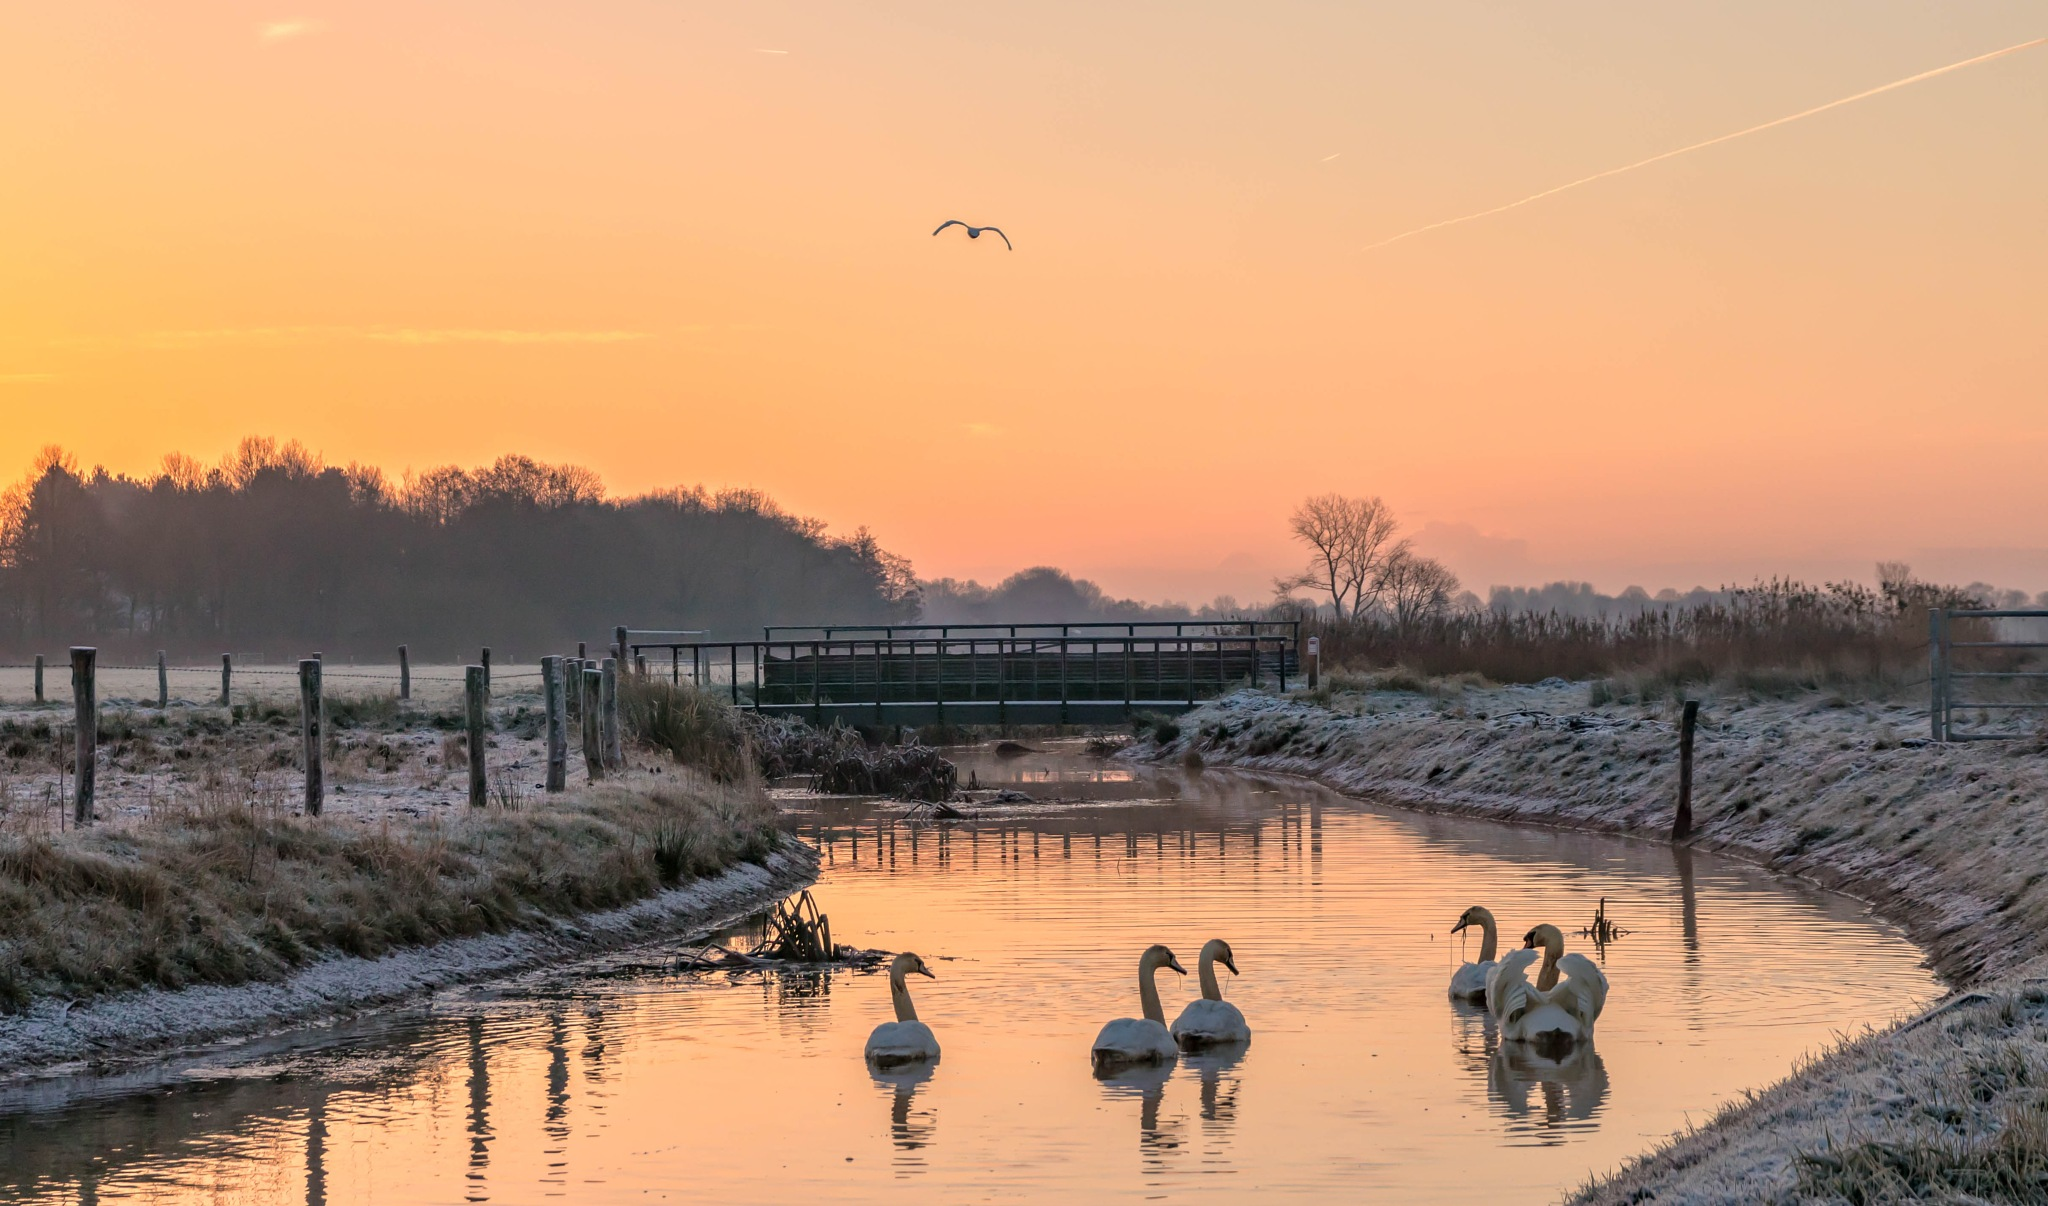 Swans at sunrise by Theo Hermsen